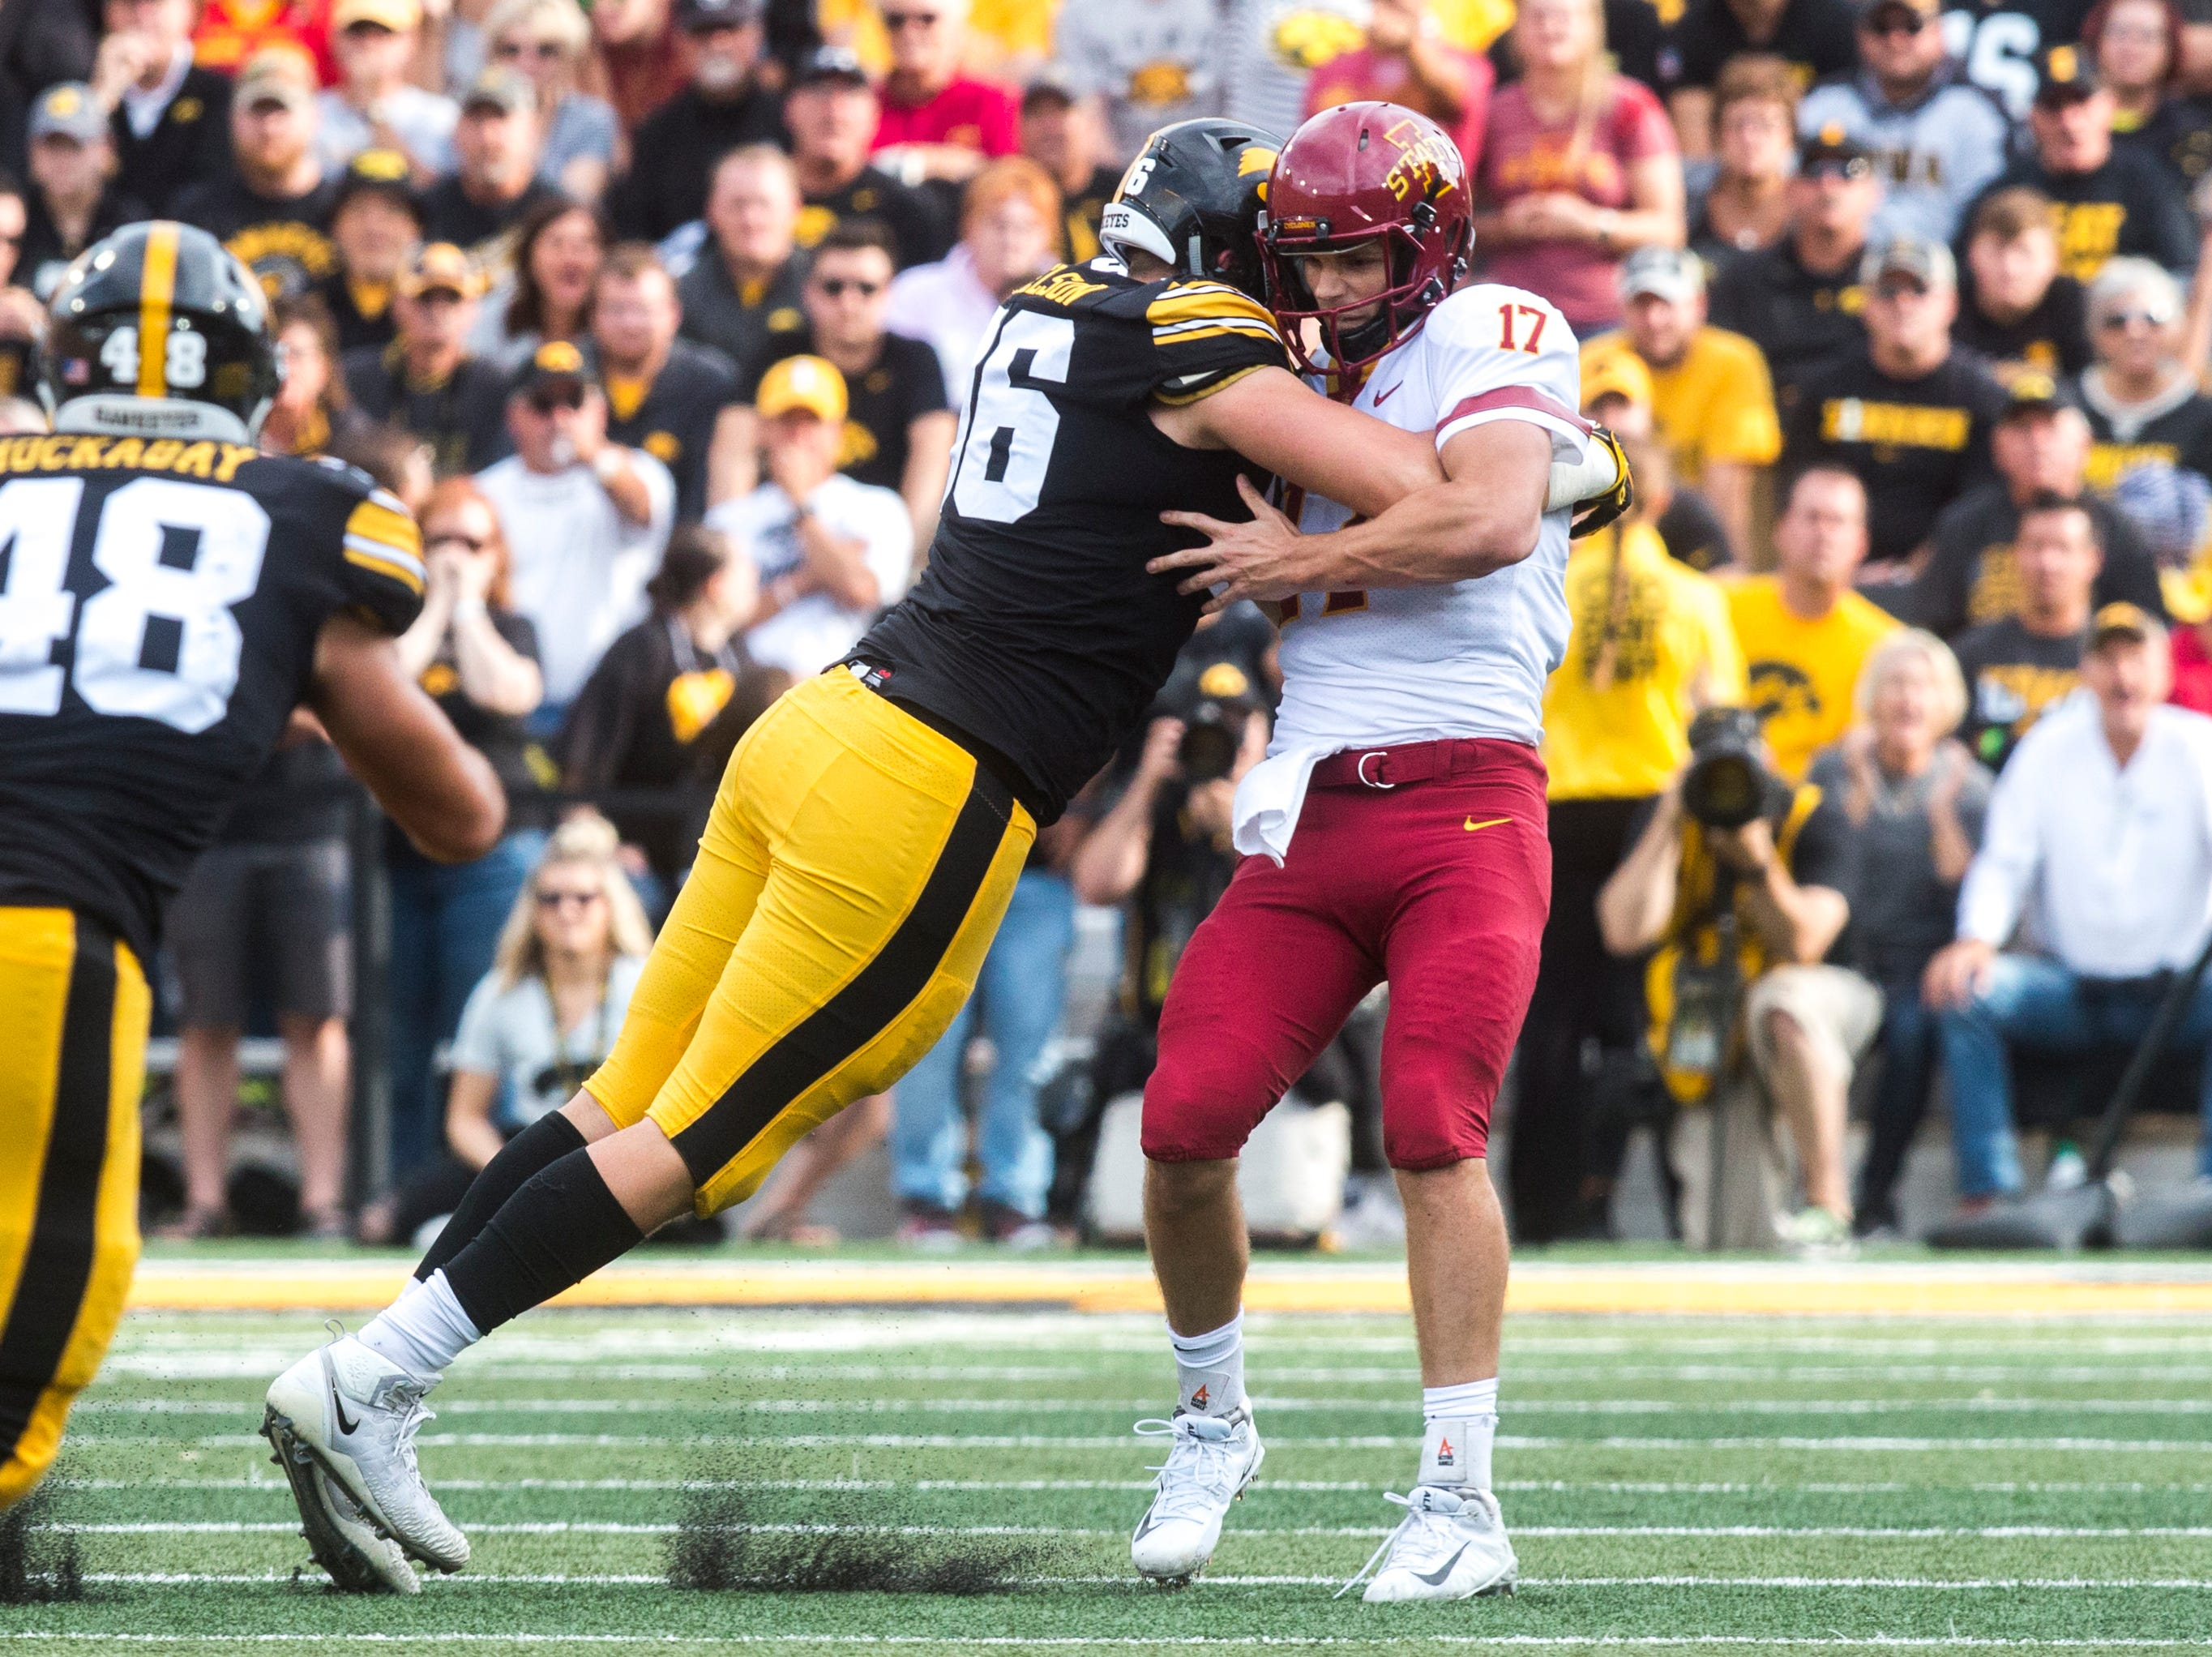 Iowa defensive end Matt Nelson (96) sacks Iowa State quarterback Kyle Kempt (17) during the Cy-Hawk NCAA football game on Saturday, Sept. 8, 2018, at Kinnick Stadium in Iowa City.